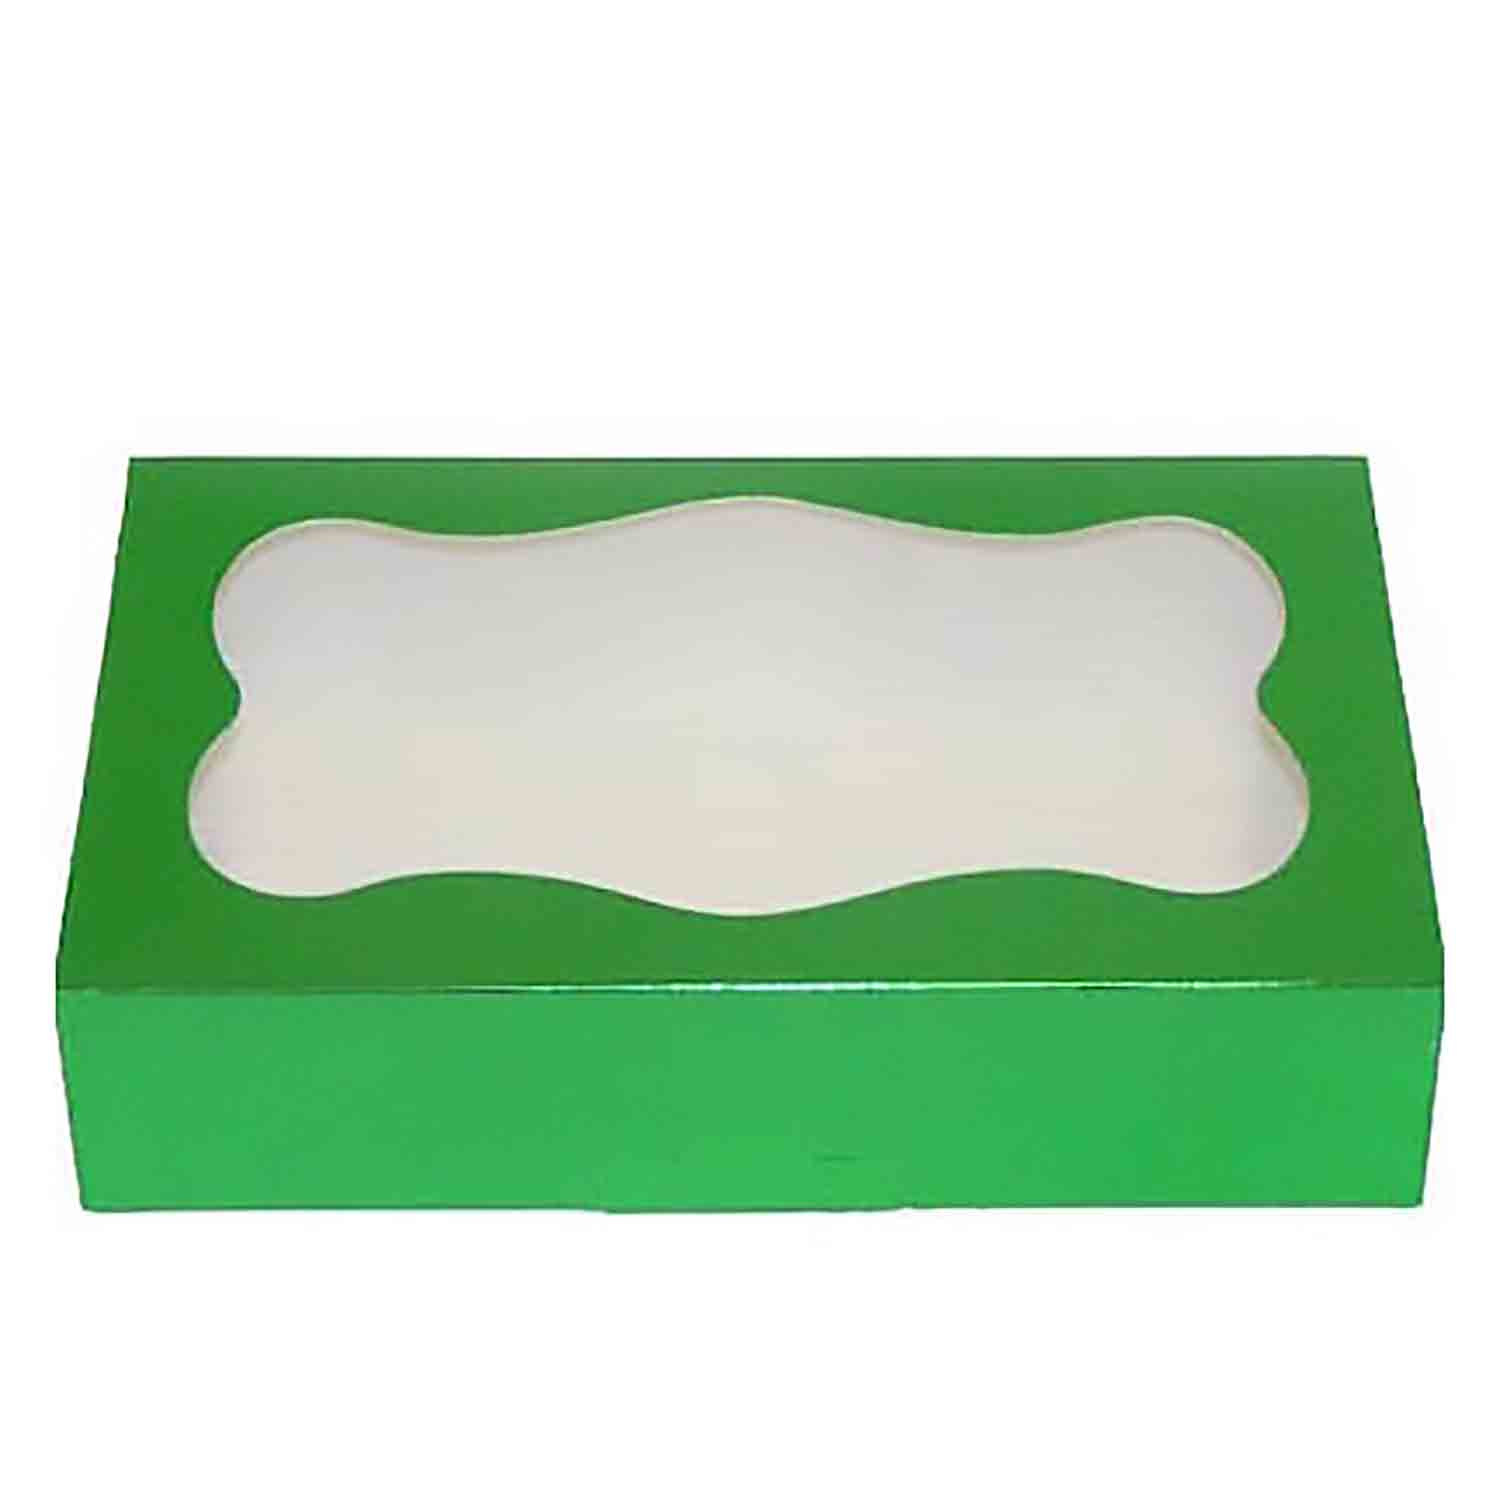 2 lb Green Foil Cookie Box with Window